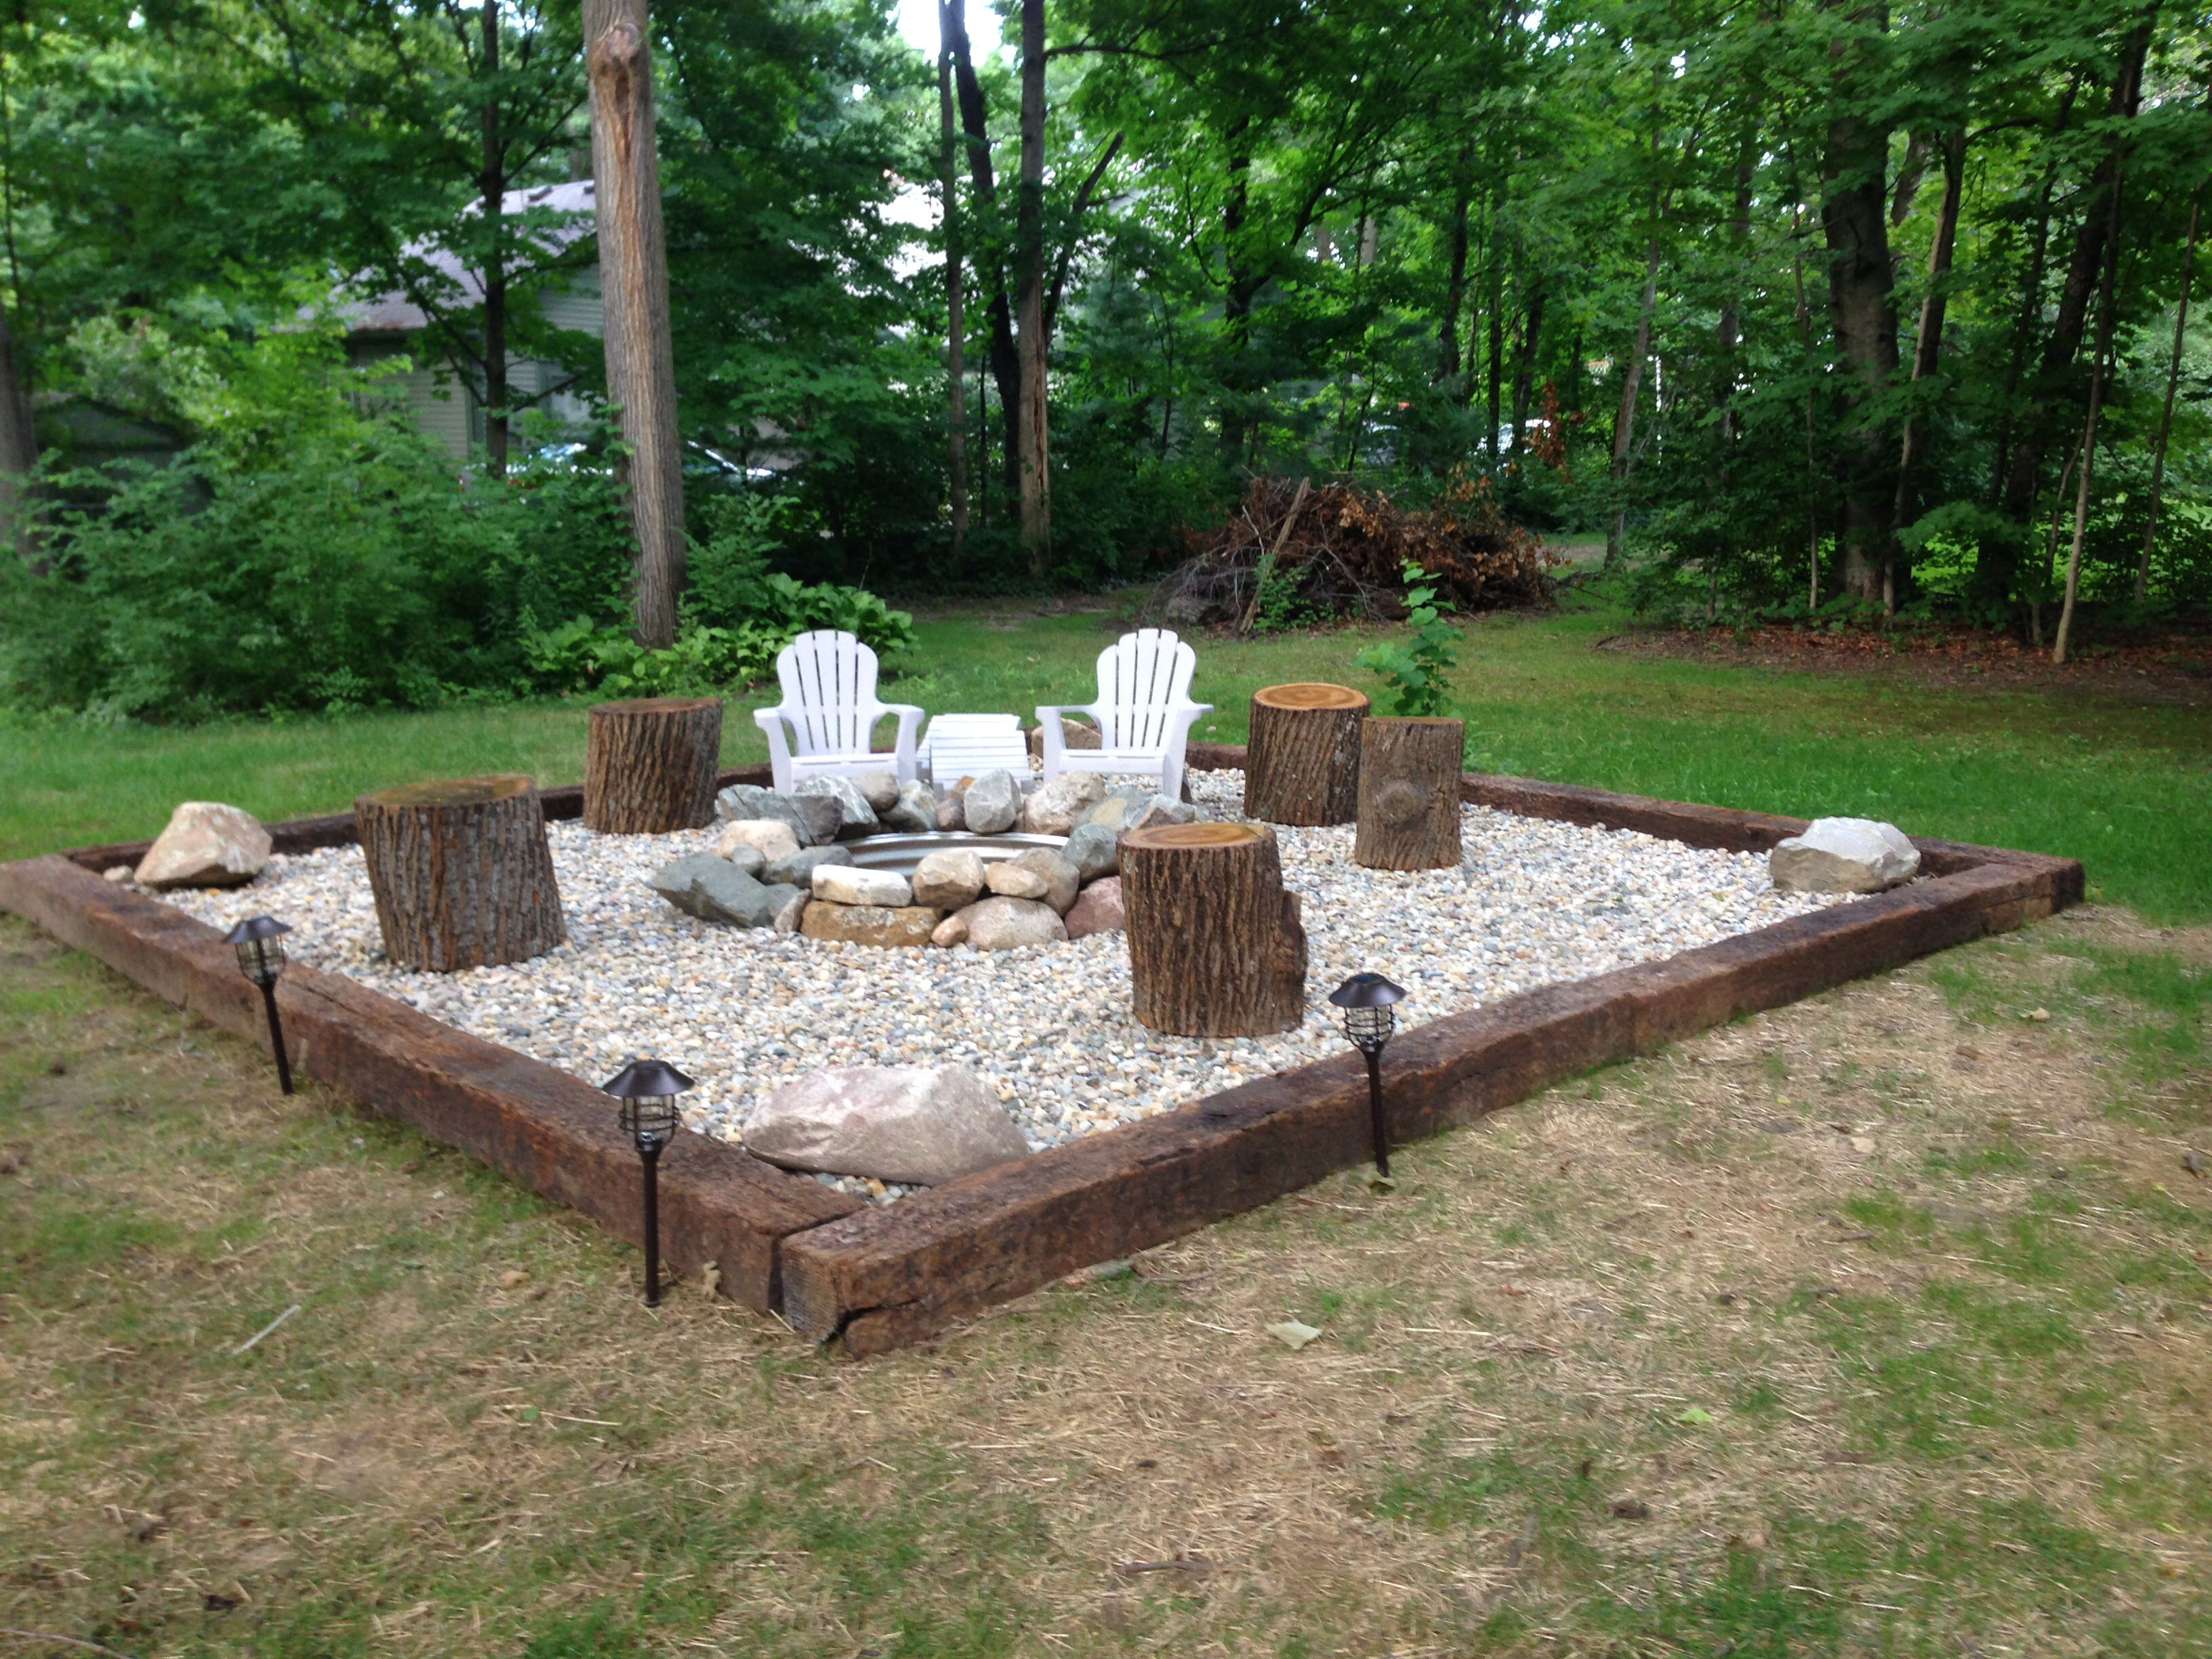 e8aebec248f82035ace01389bfacdf9d Top Result 50 Awesome Rustic Fire Pit